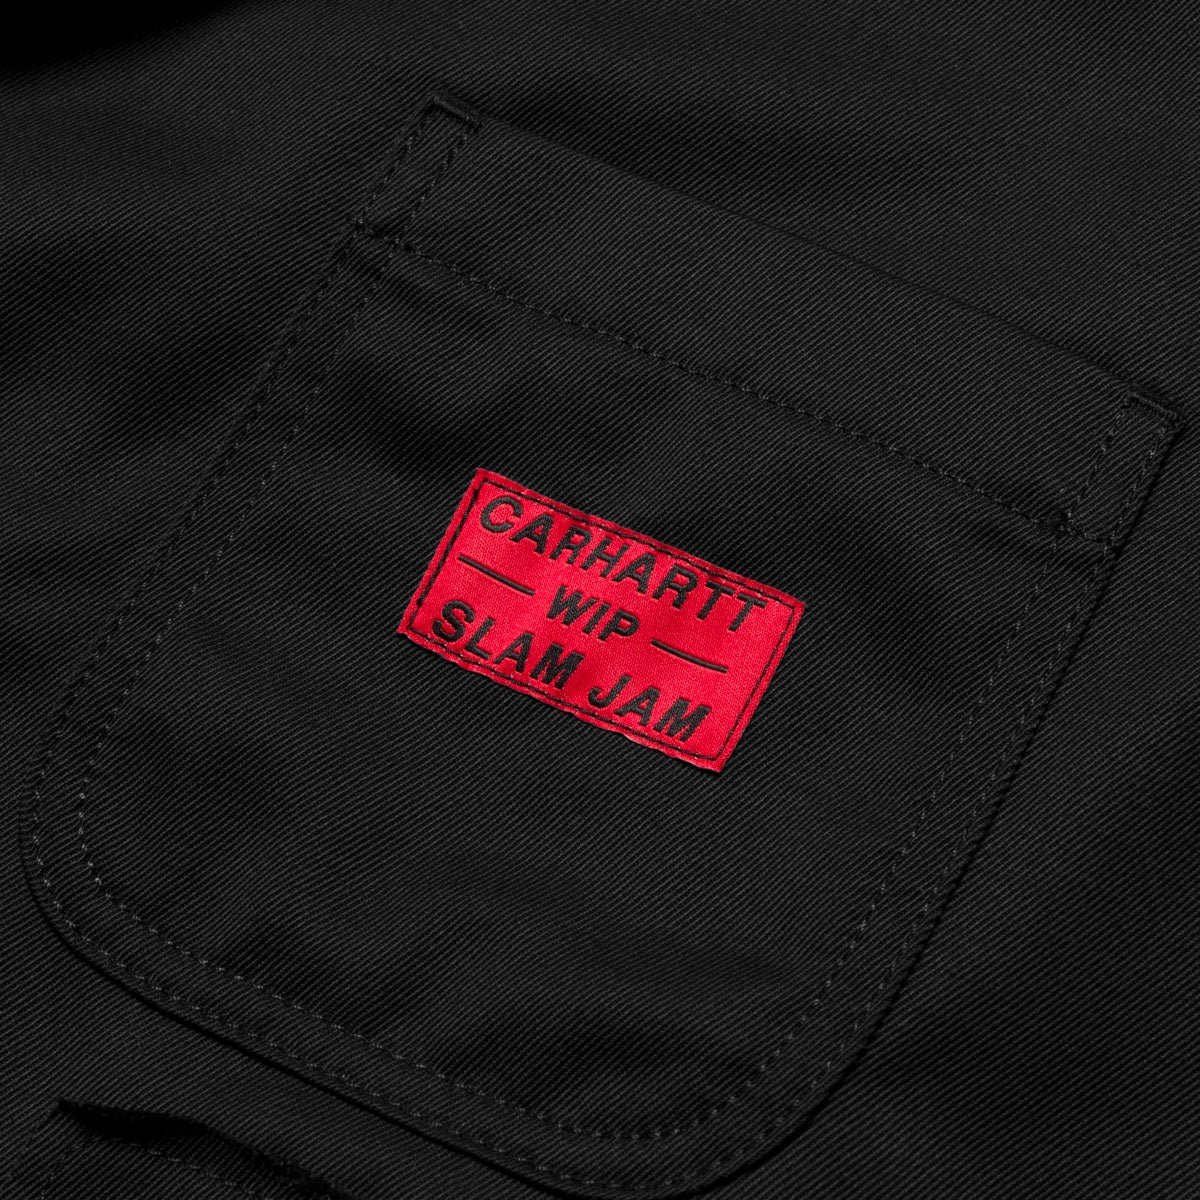 Carhartt WIP Minute Man Shop Jacket x Slam Jam